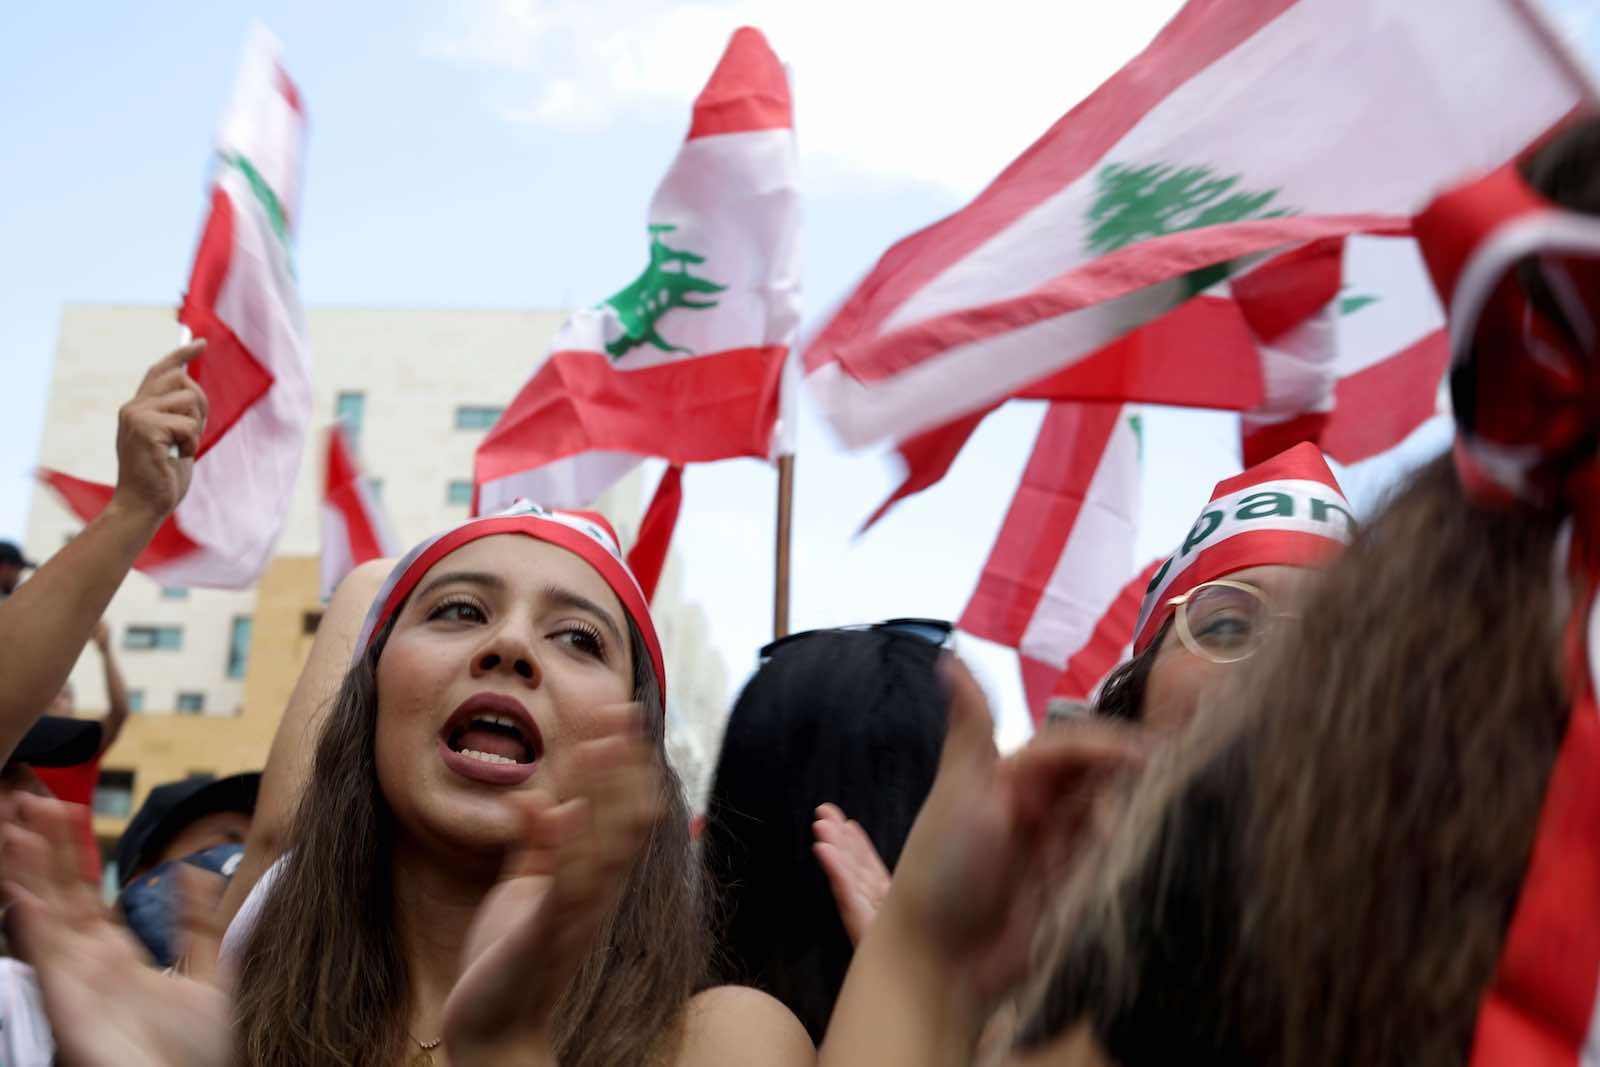 A rally in downtown Beirut on 20 October (Photo: Patrick Baz/AFP/Getty Images)